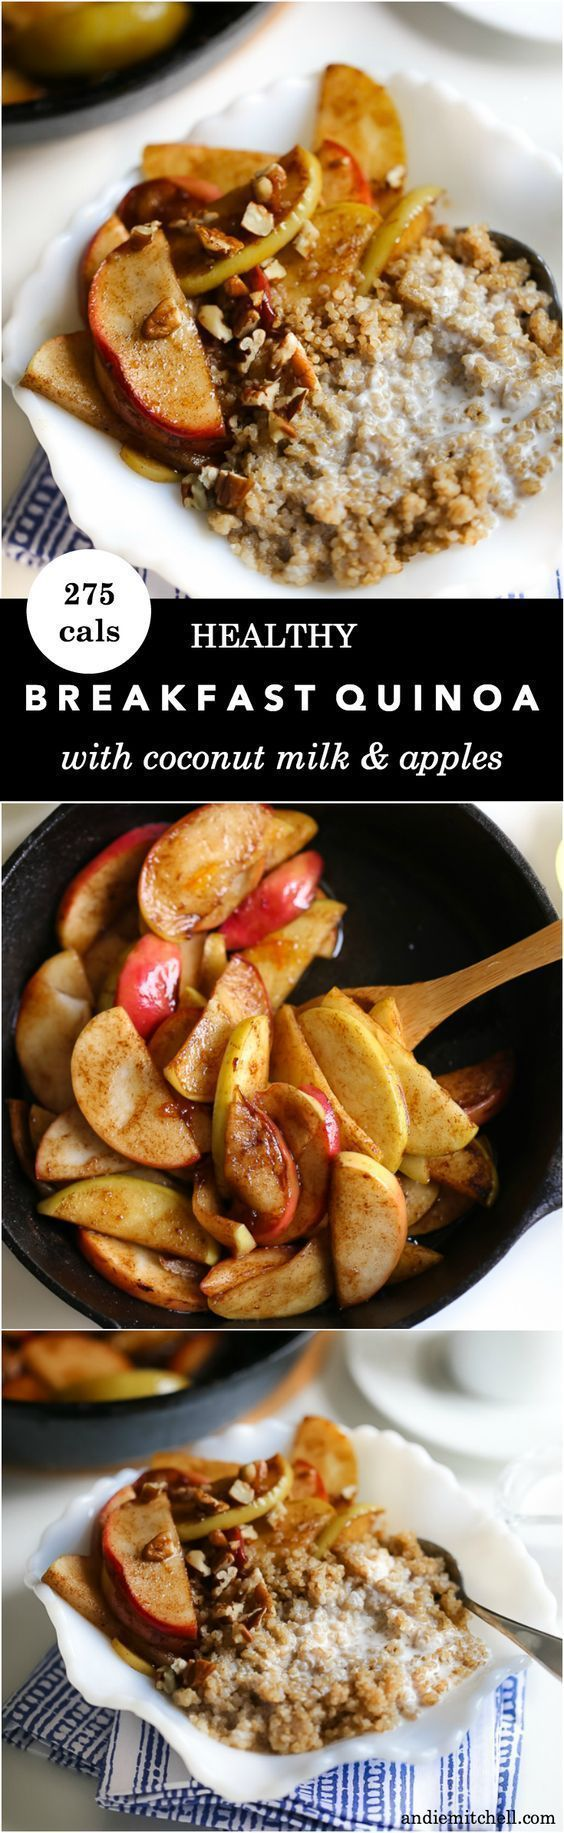 Healthy Breakfast Quinoa with Coconut Milk and Apples! You need this delicious and healthy breakfast recipe! Its sweet, filling, whole grain, and so good for you. Only 275 calories per bowl